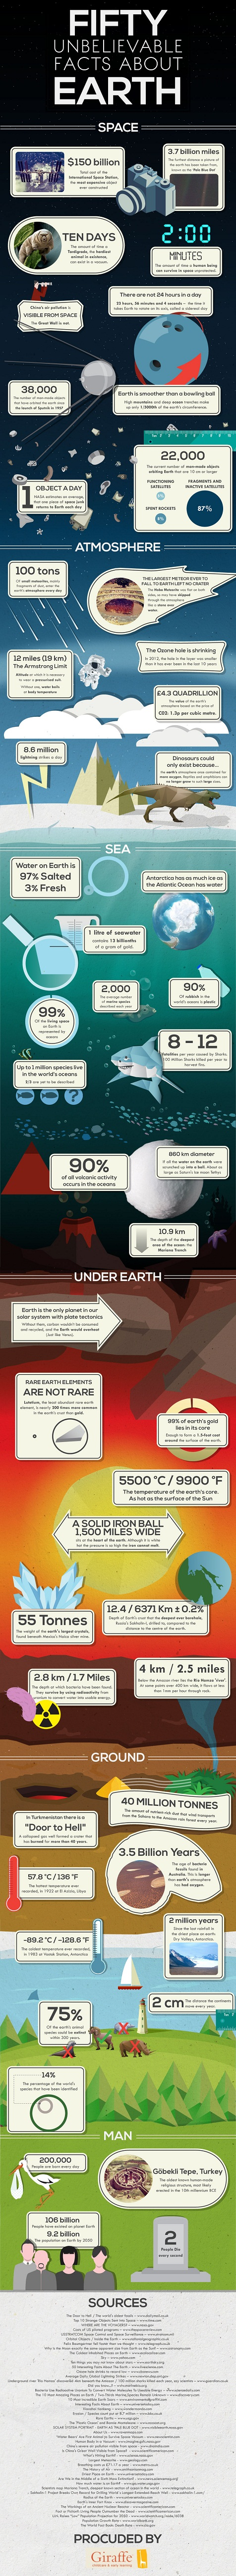 50 Unbelievable Facts About Earth [Infographic]